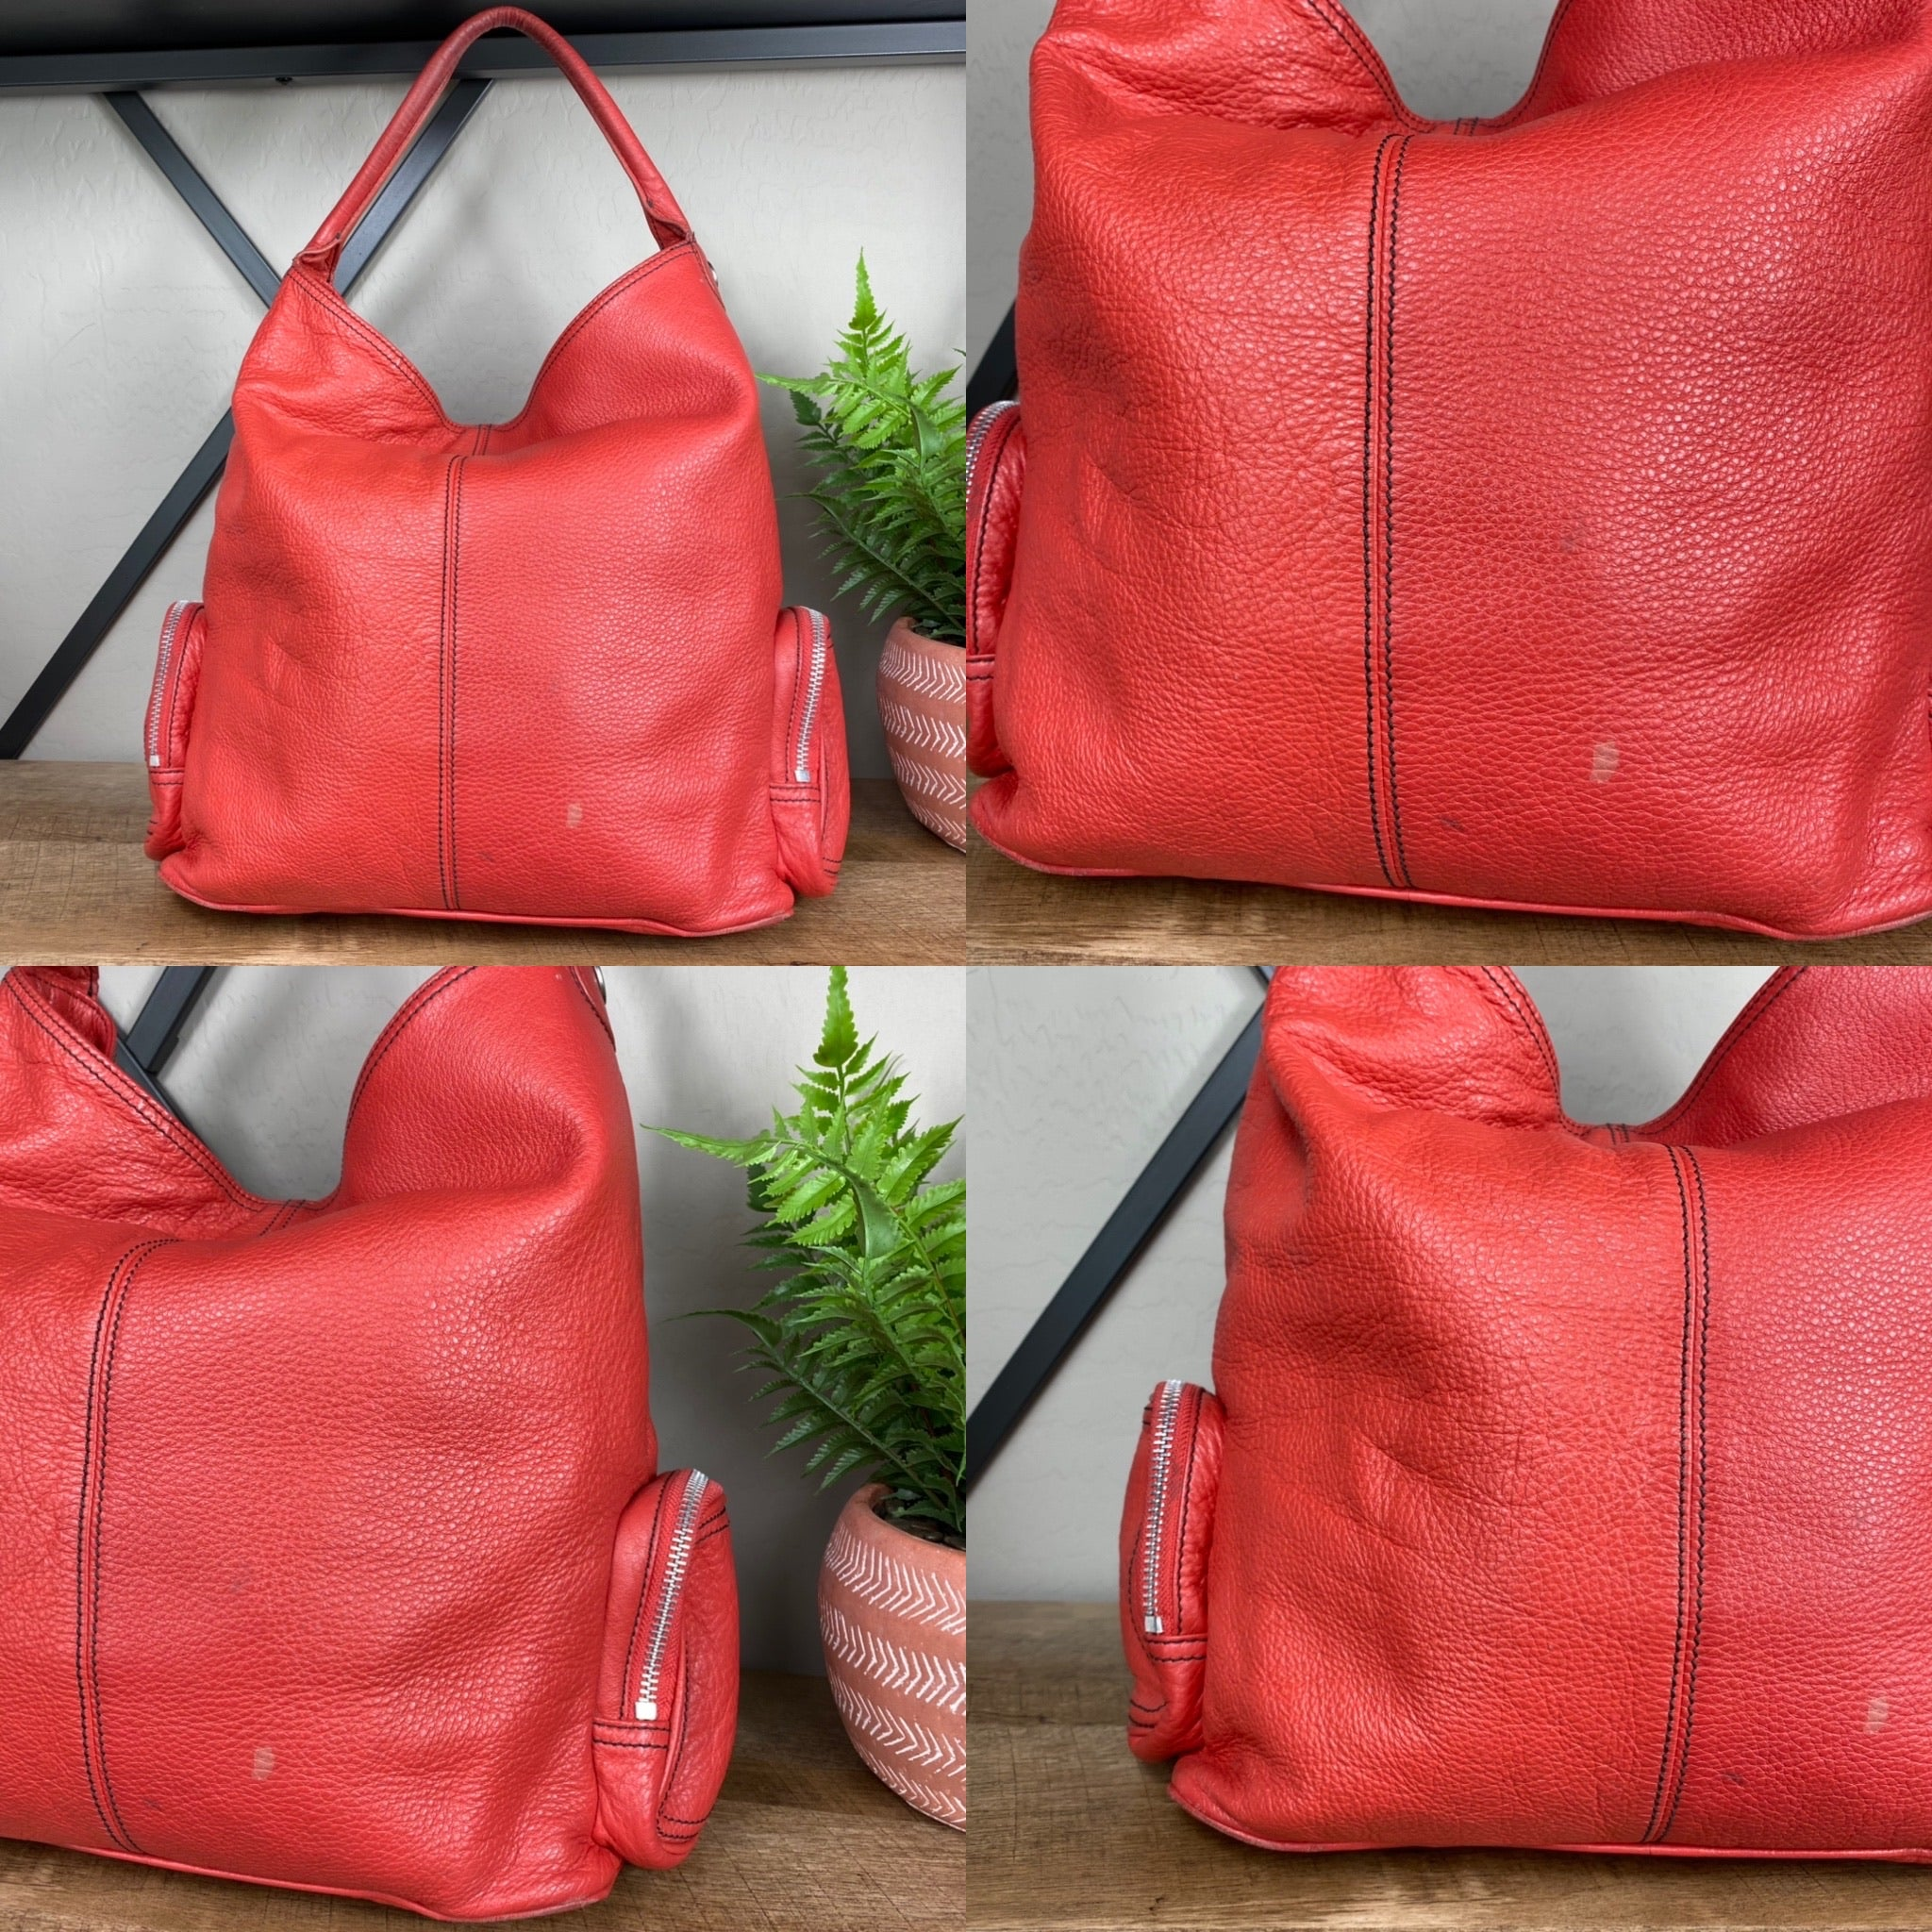 Marc Jacobs Large Blake Leather Hobo